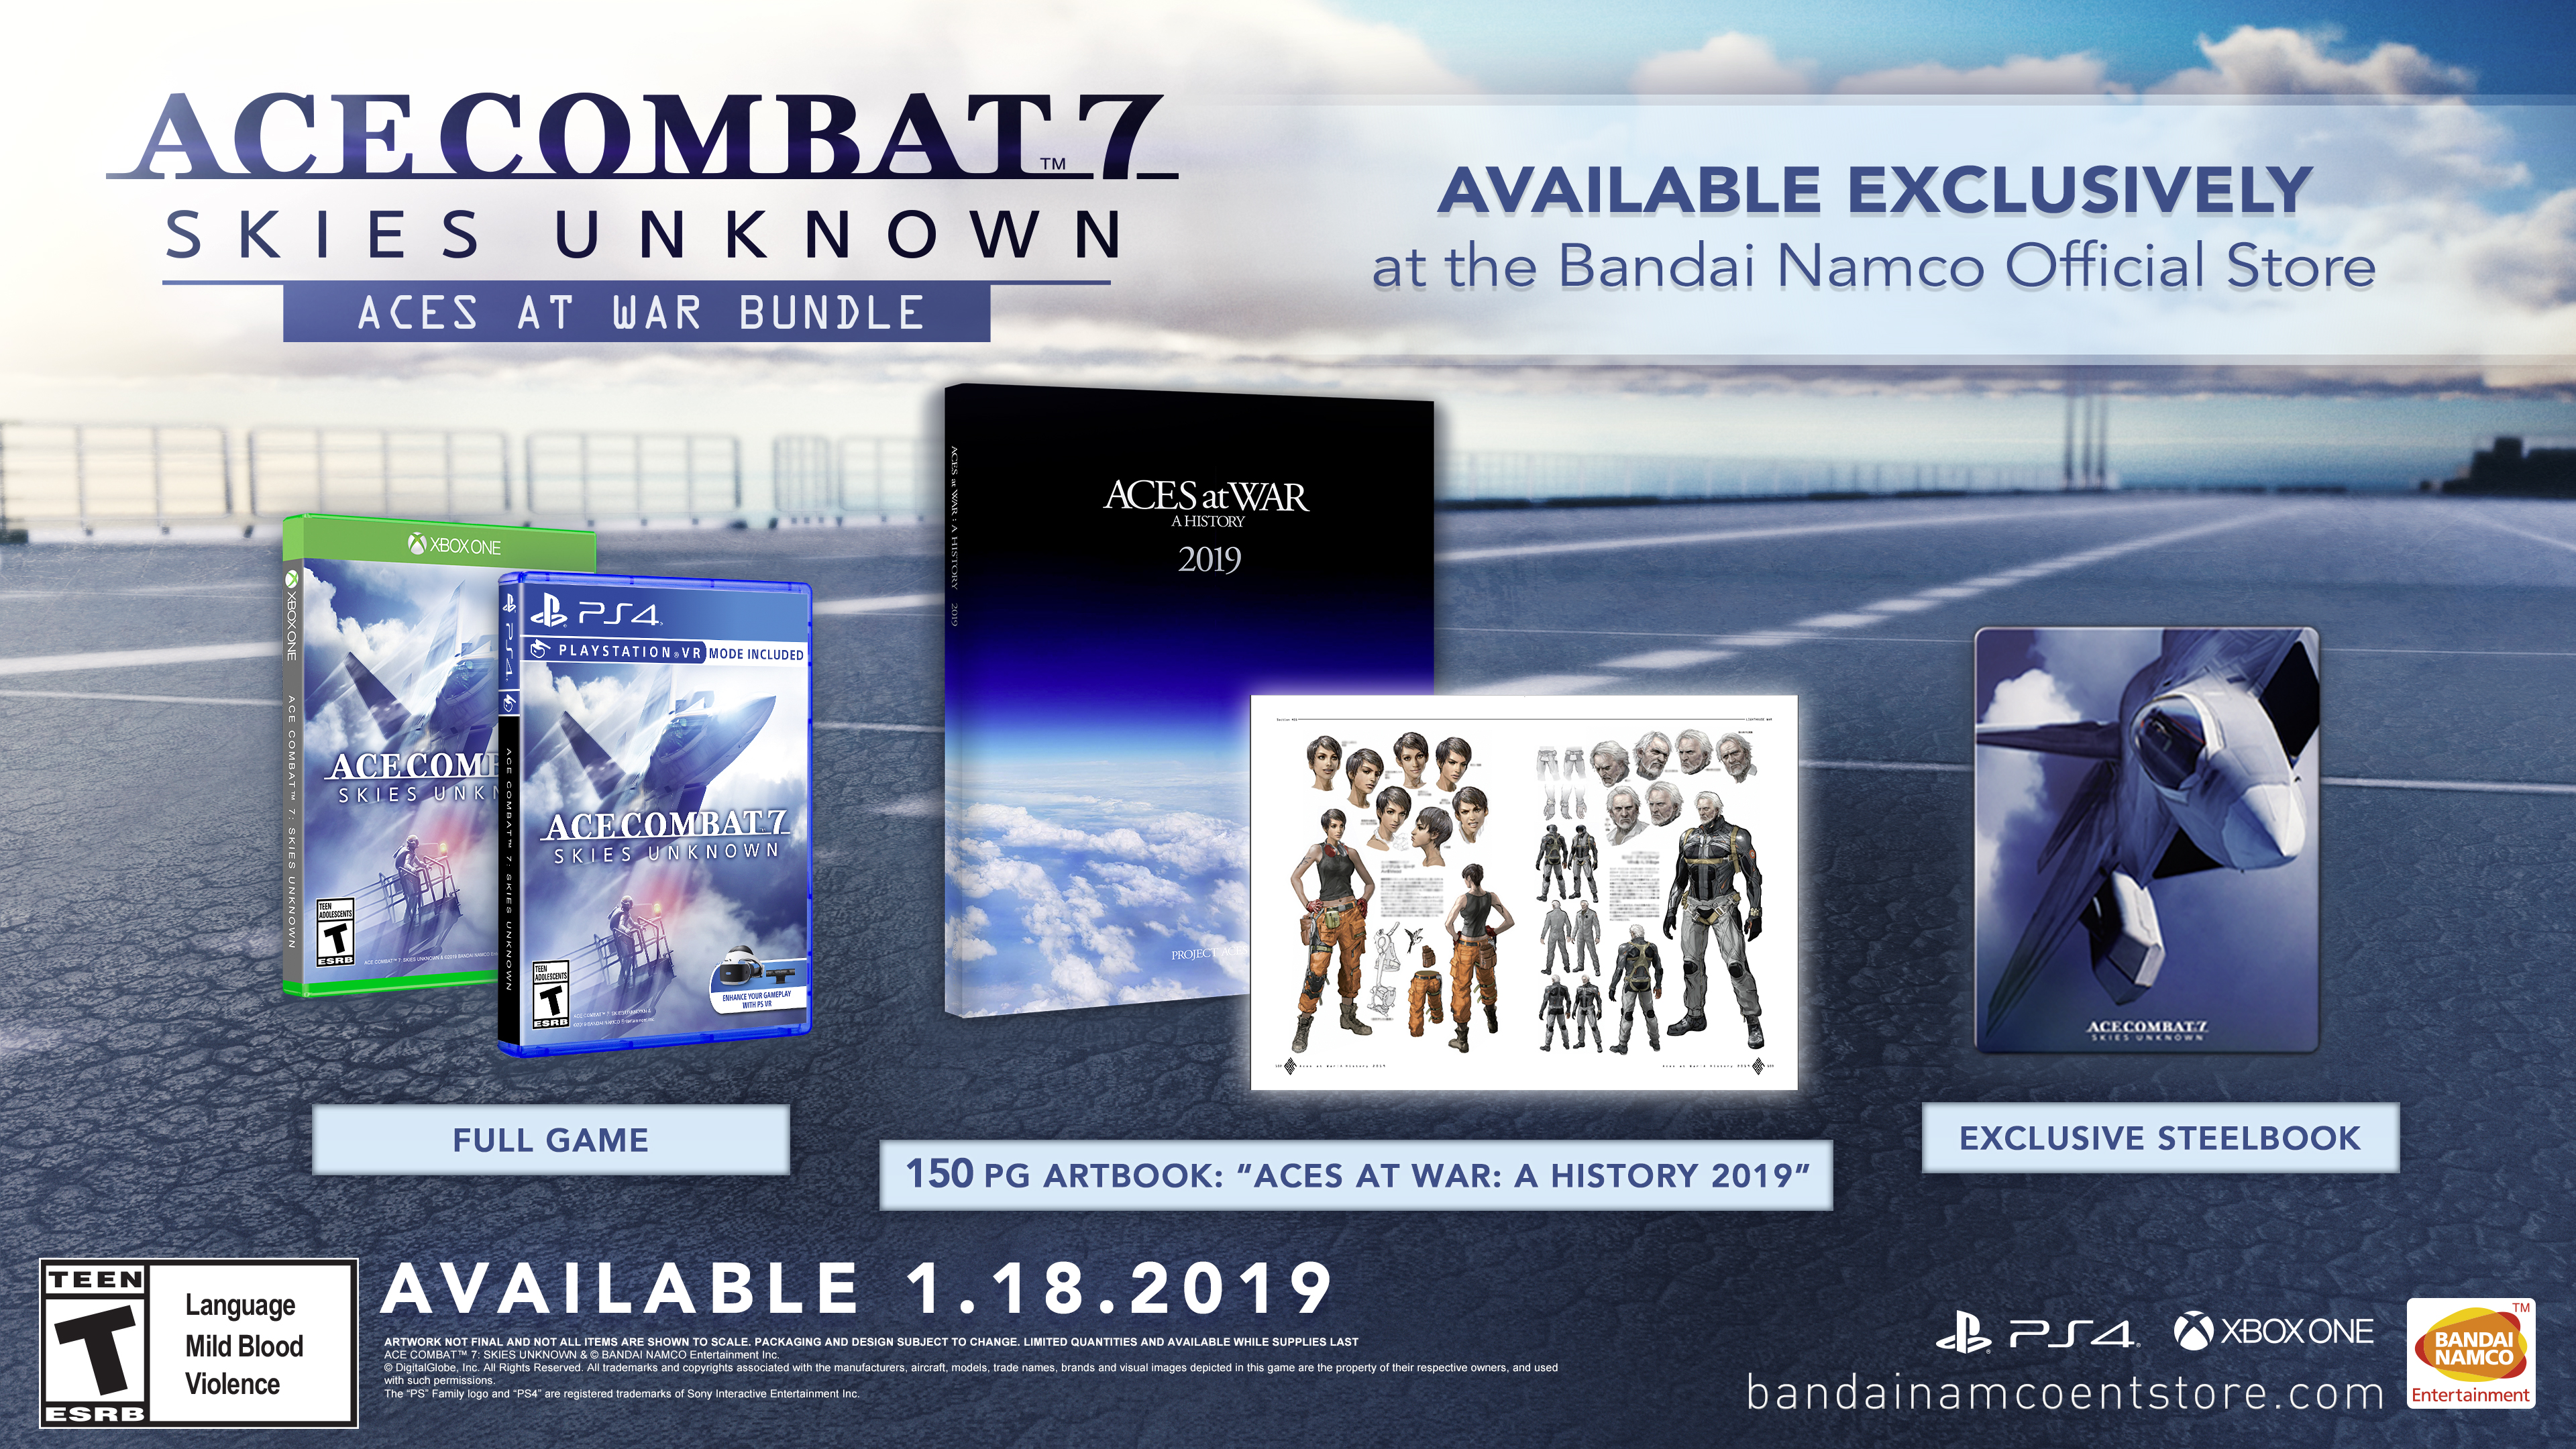 Ace Combat 7: Skies unknown - Aces at War Bundle